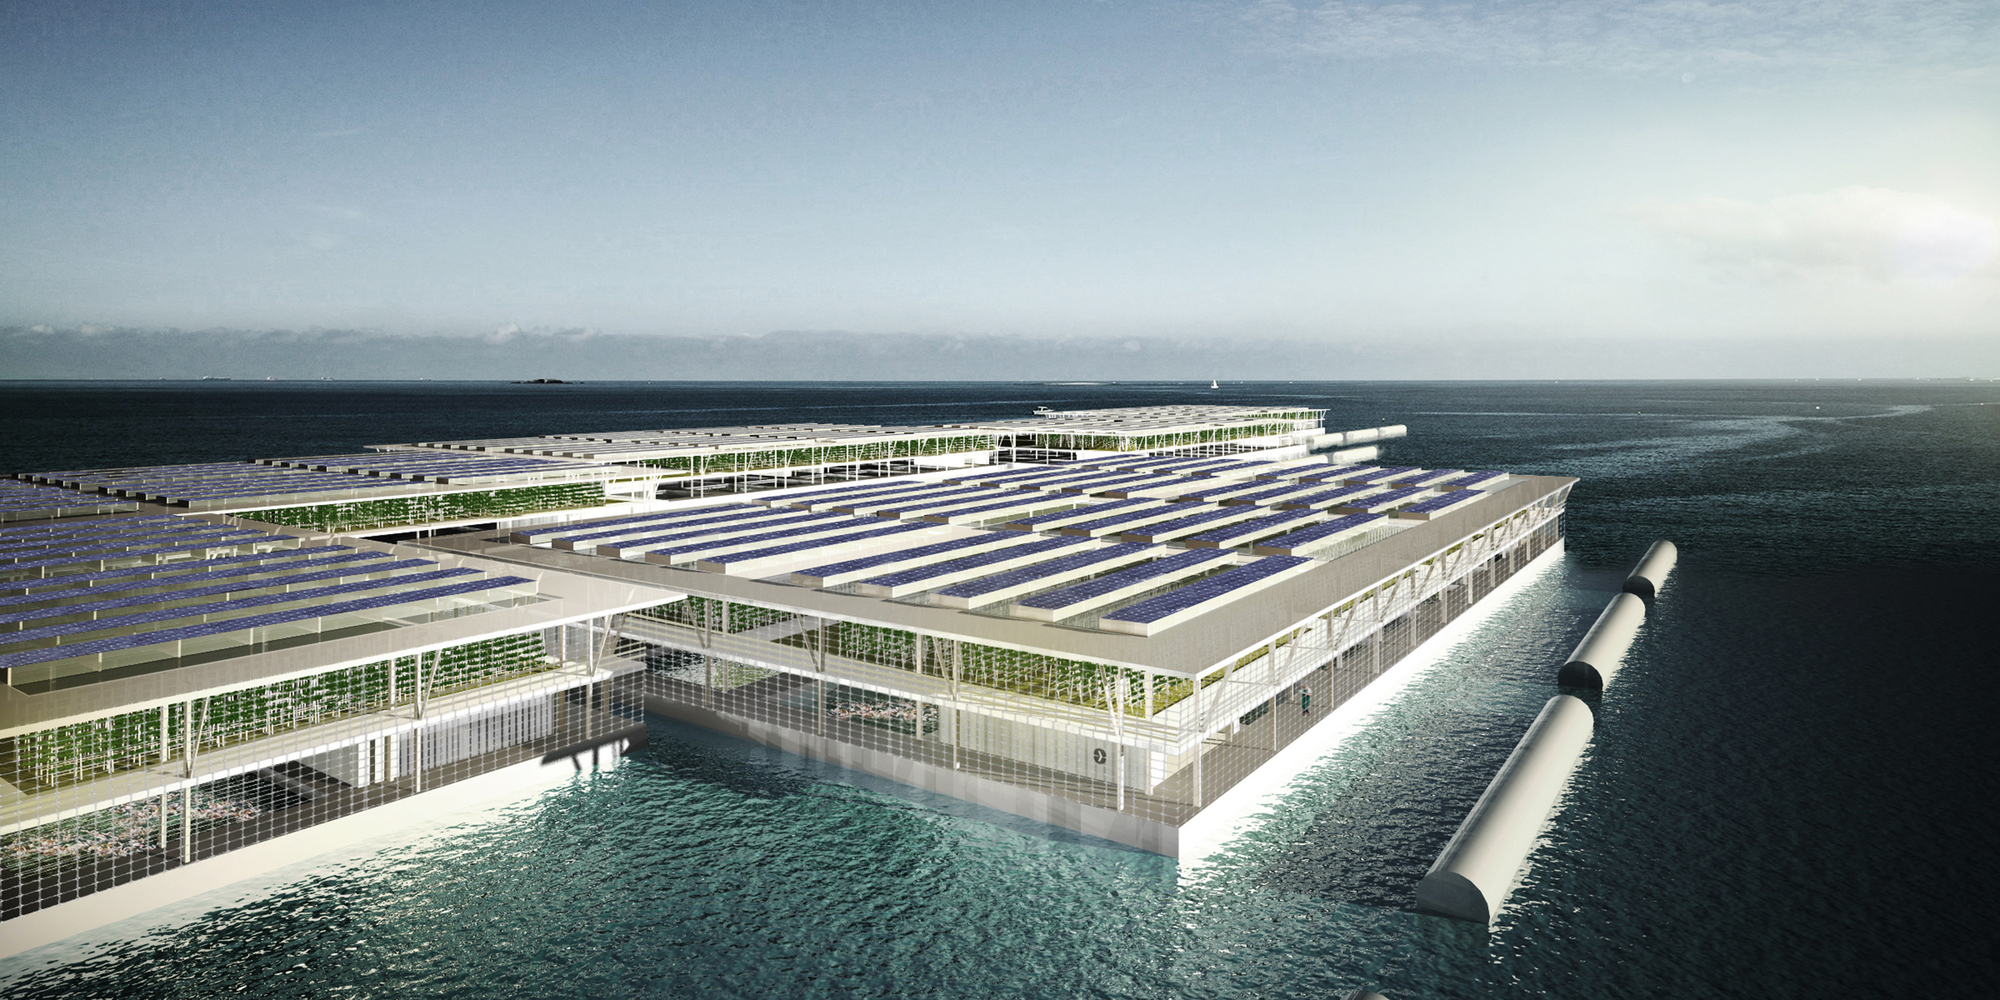 These Floating Farms Could Be Key To Feeding Future Populations | ArchDaily